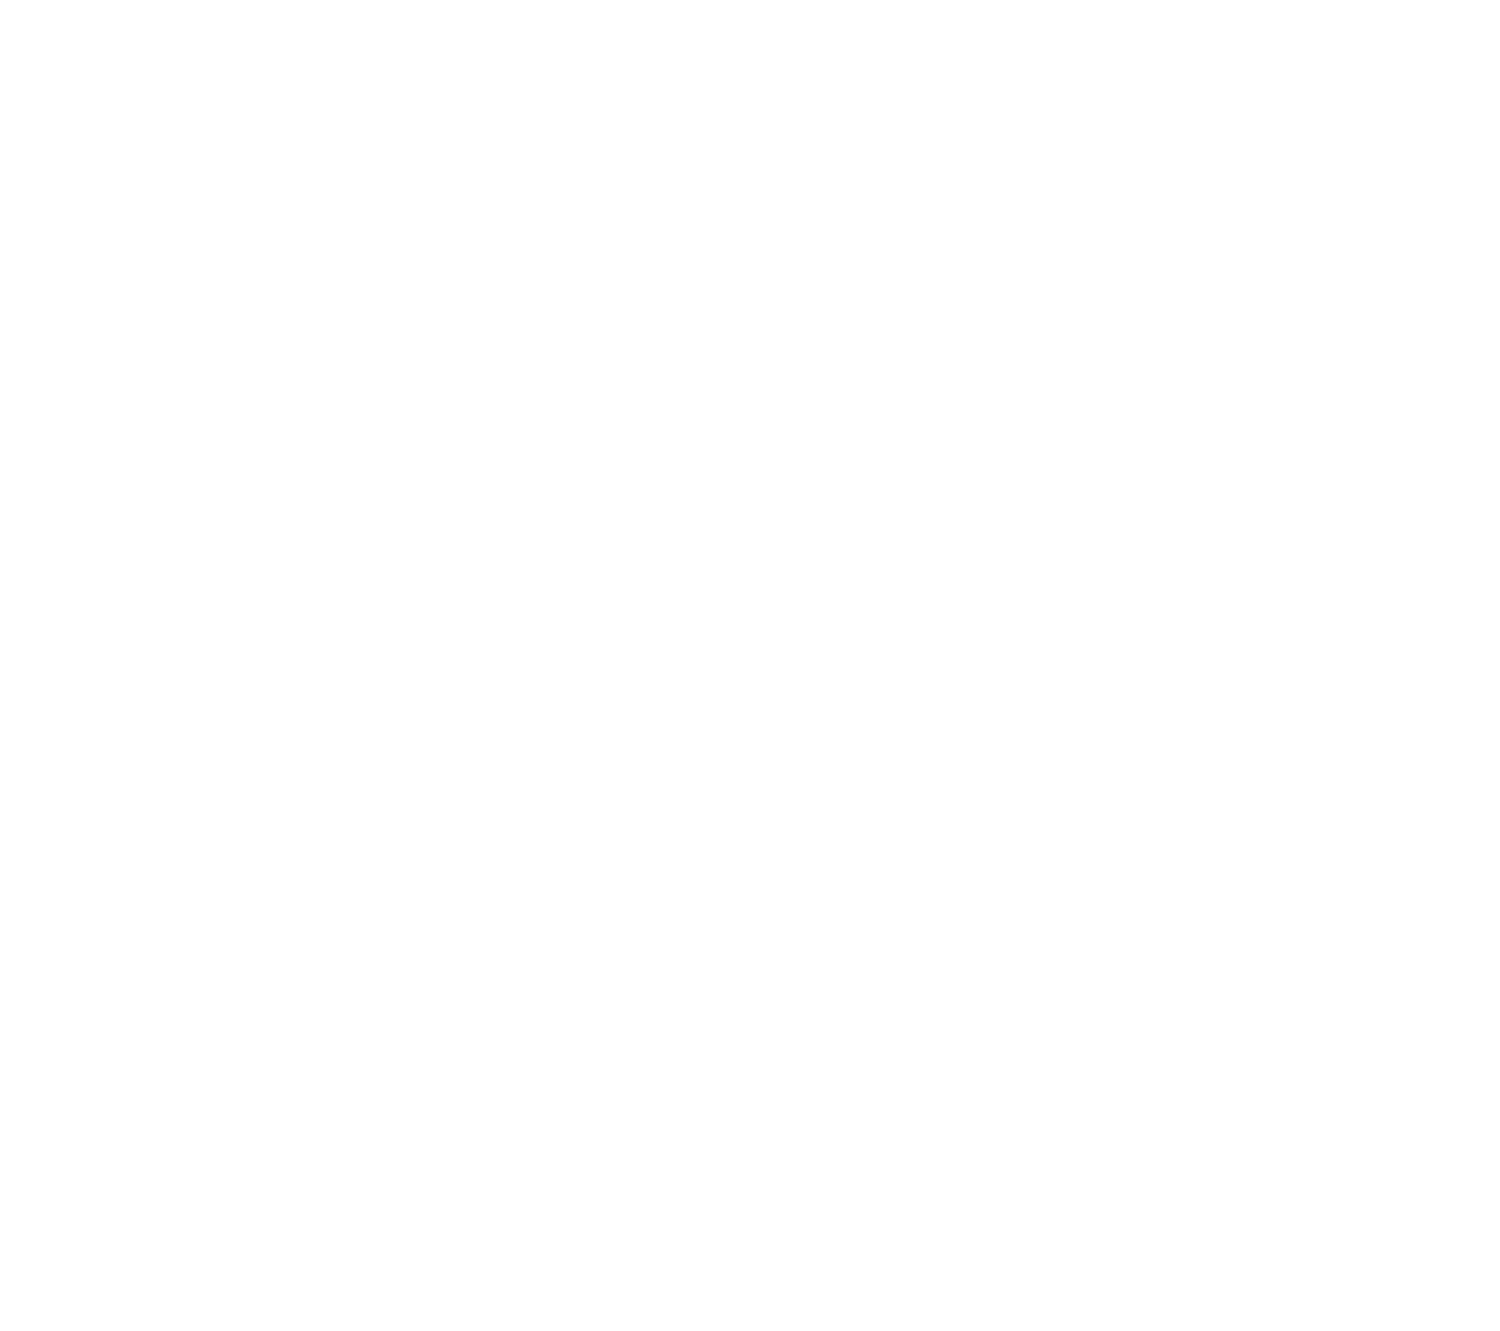 Headroom dB